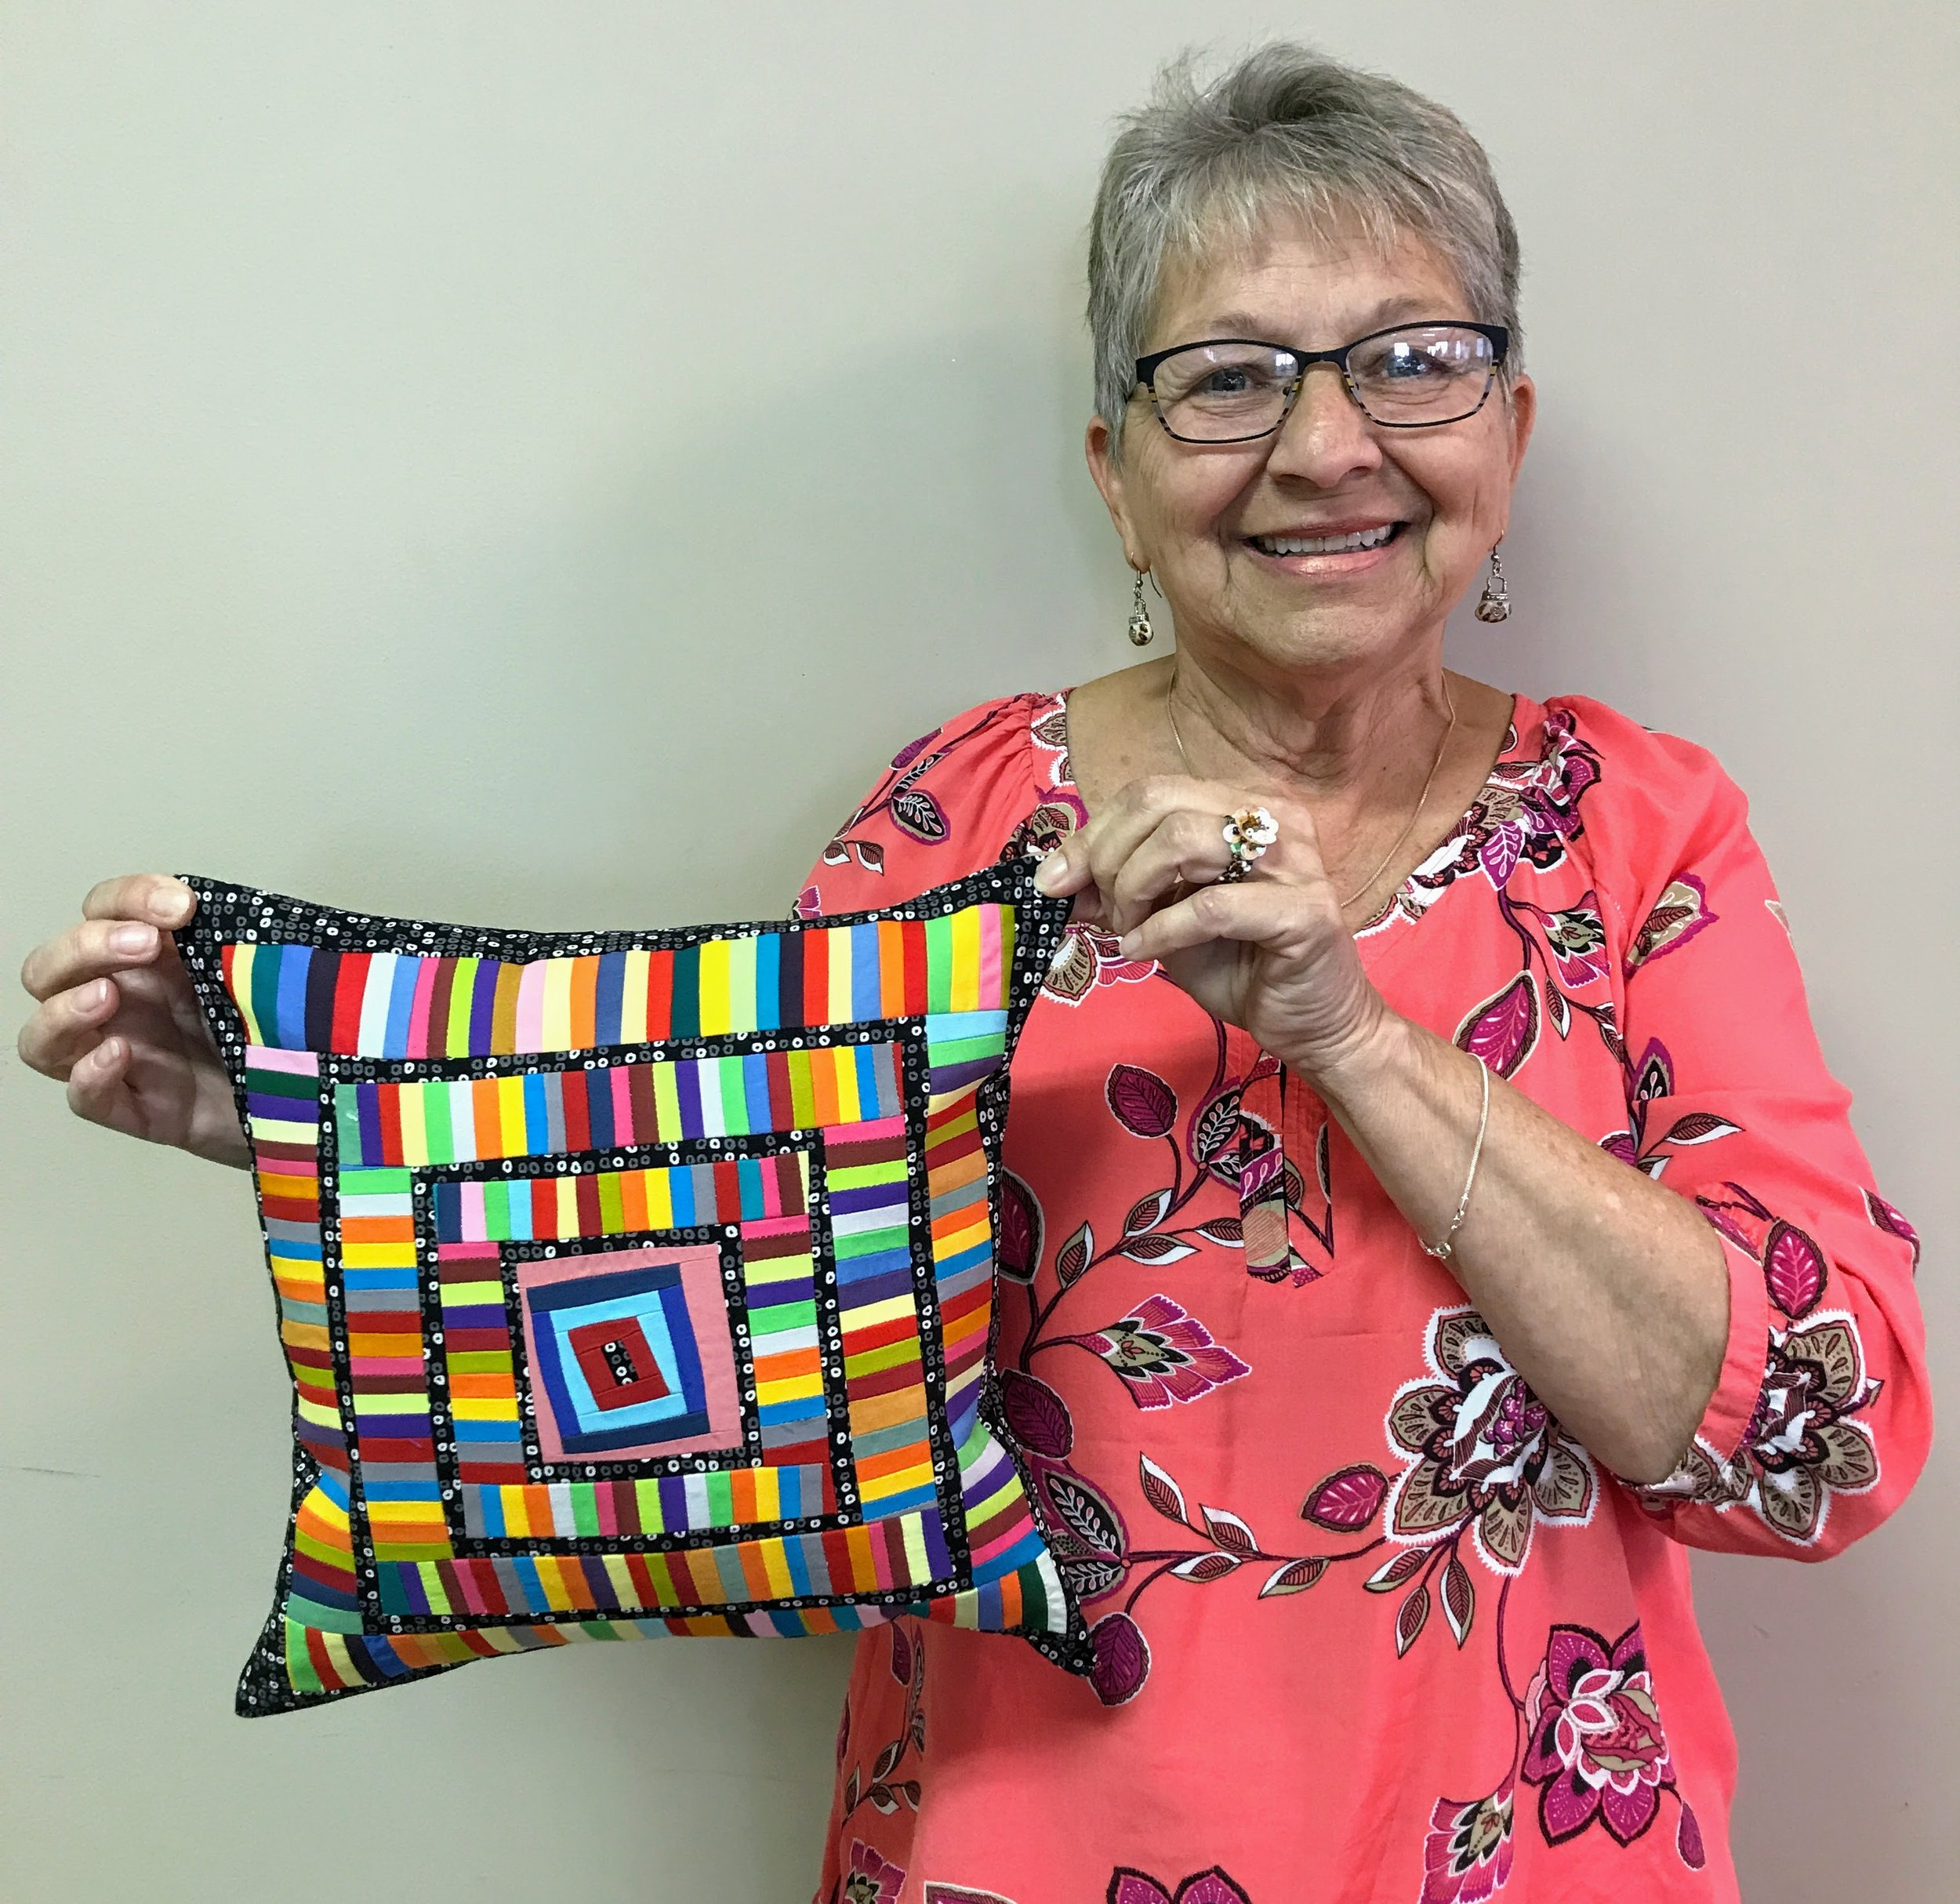 Sandi Suggs and her improv pillow